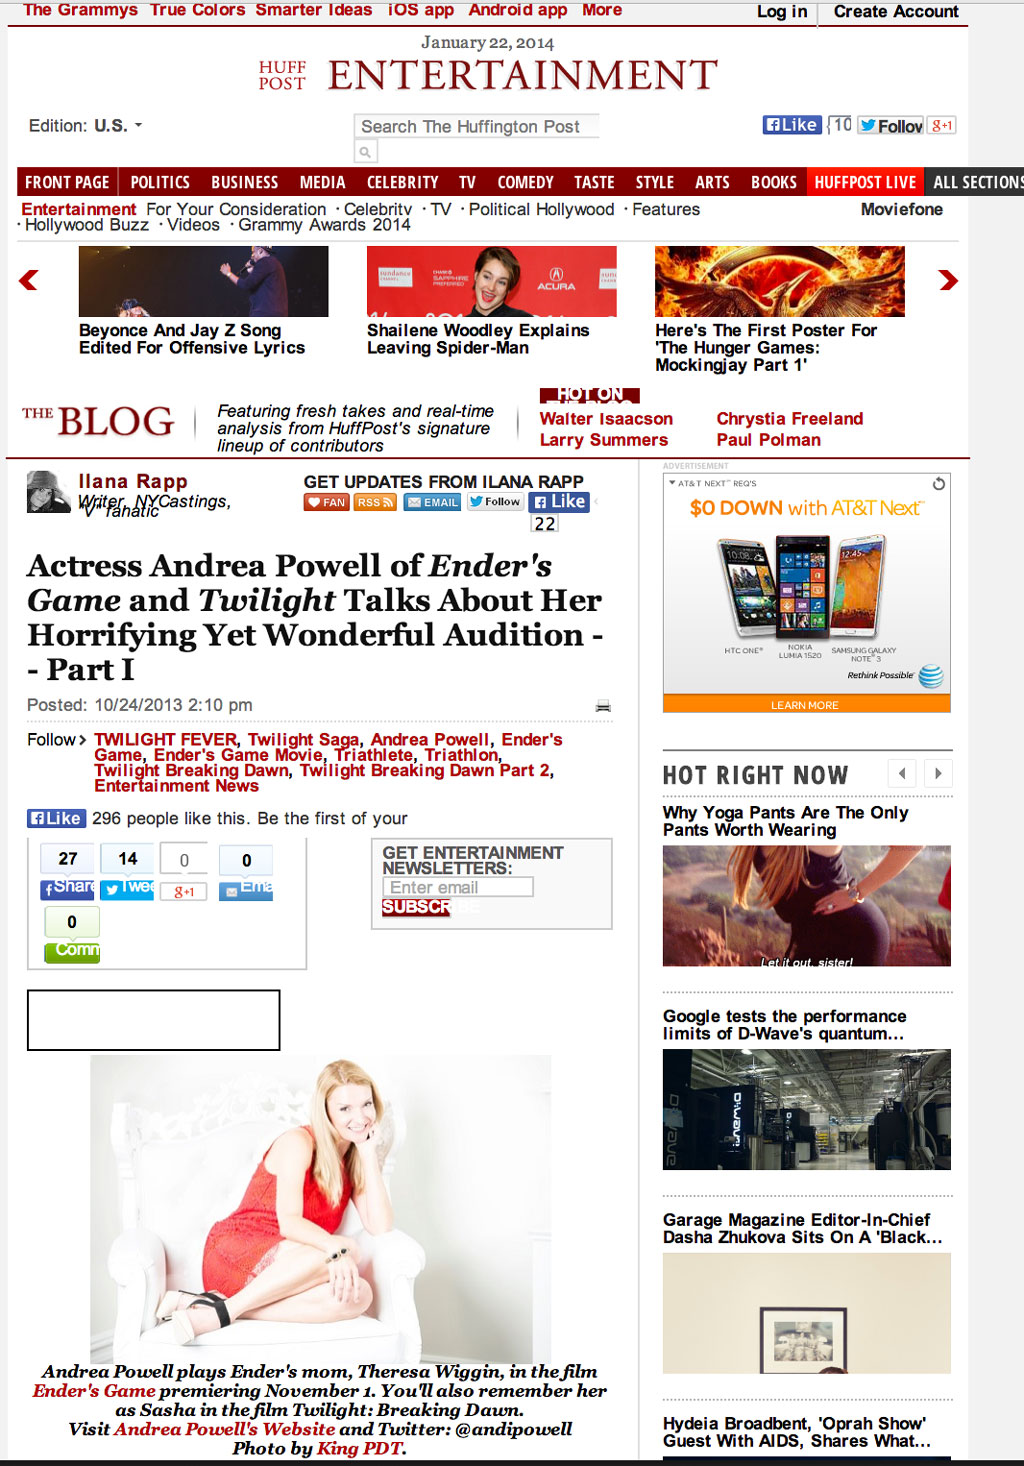 Huffington Post Entertainment interviews Andrea Powell's Role in Ender's Game